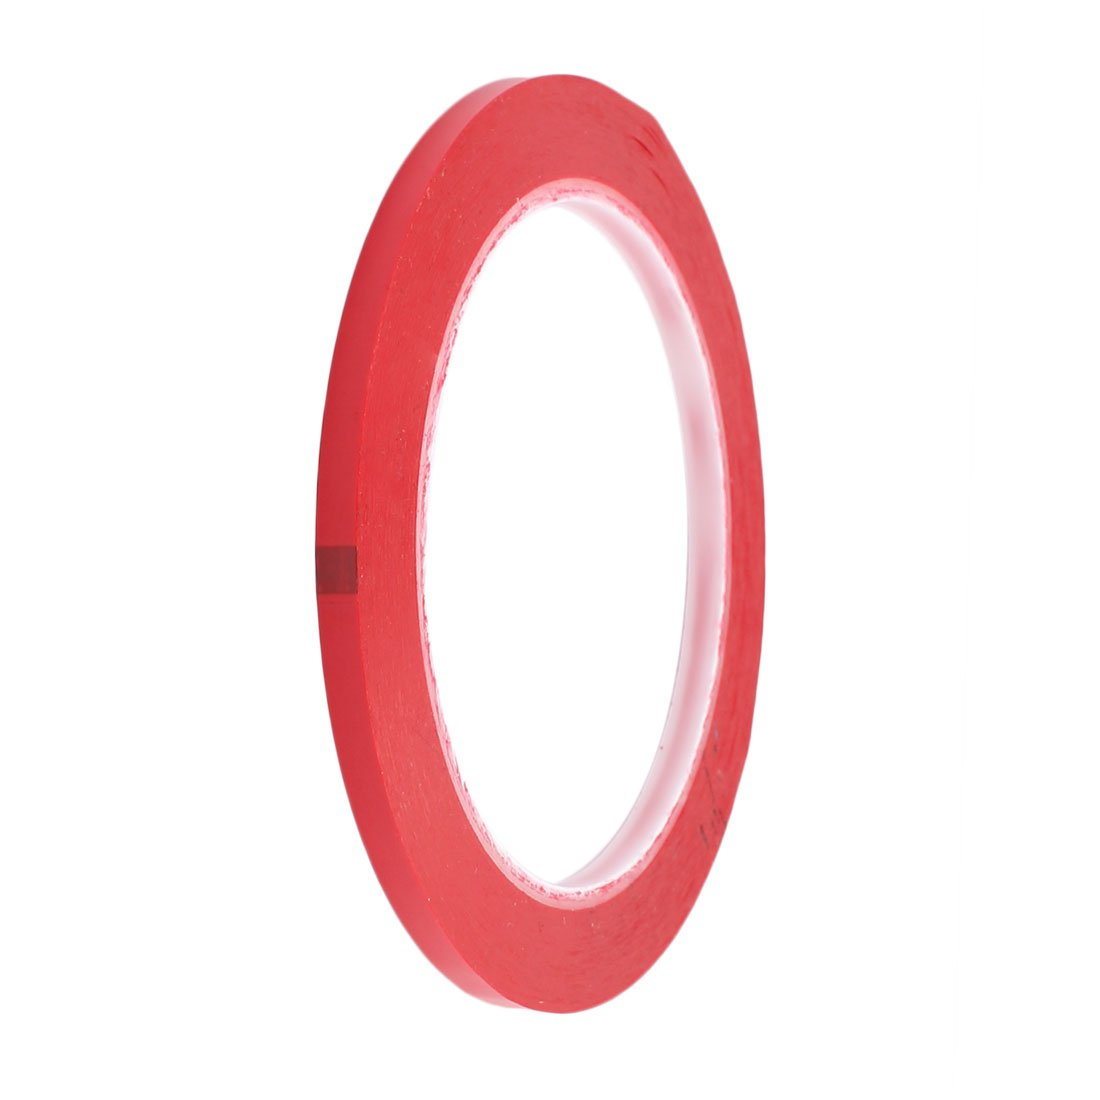 uxcell 5mm Width 66M Length Single Sided Adhesive Marking Tape Mara Tape Red